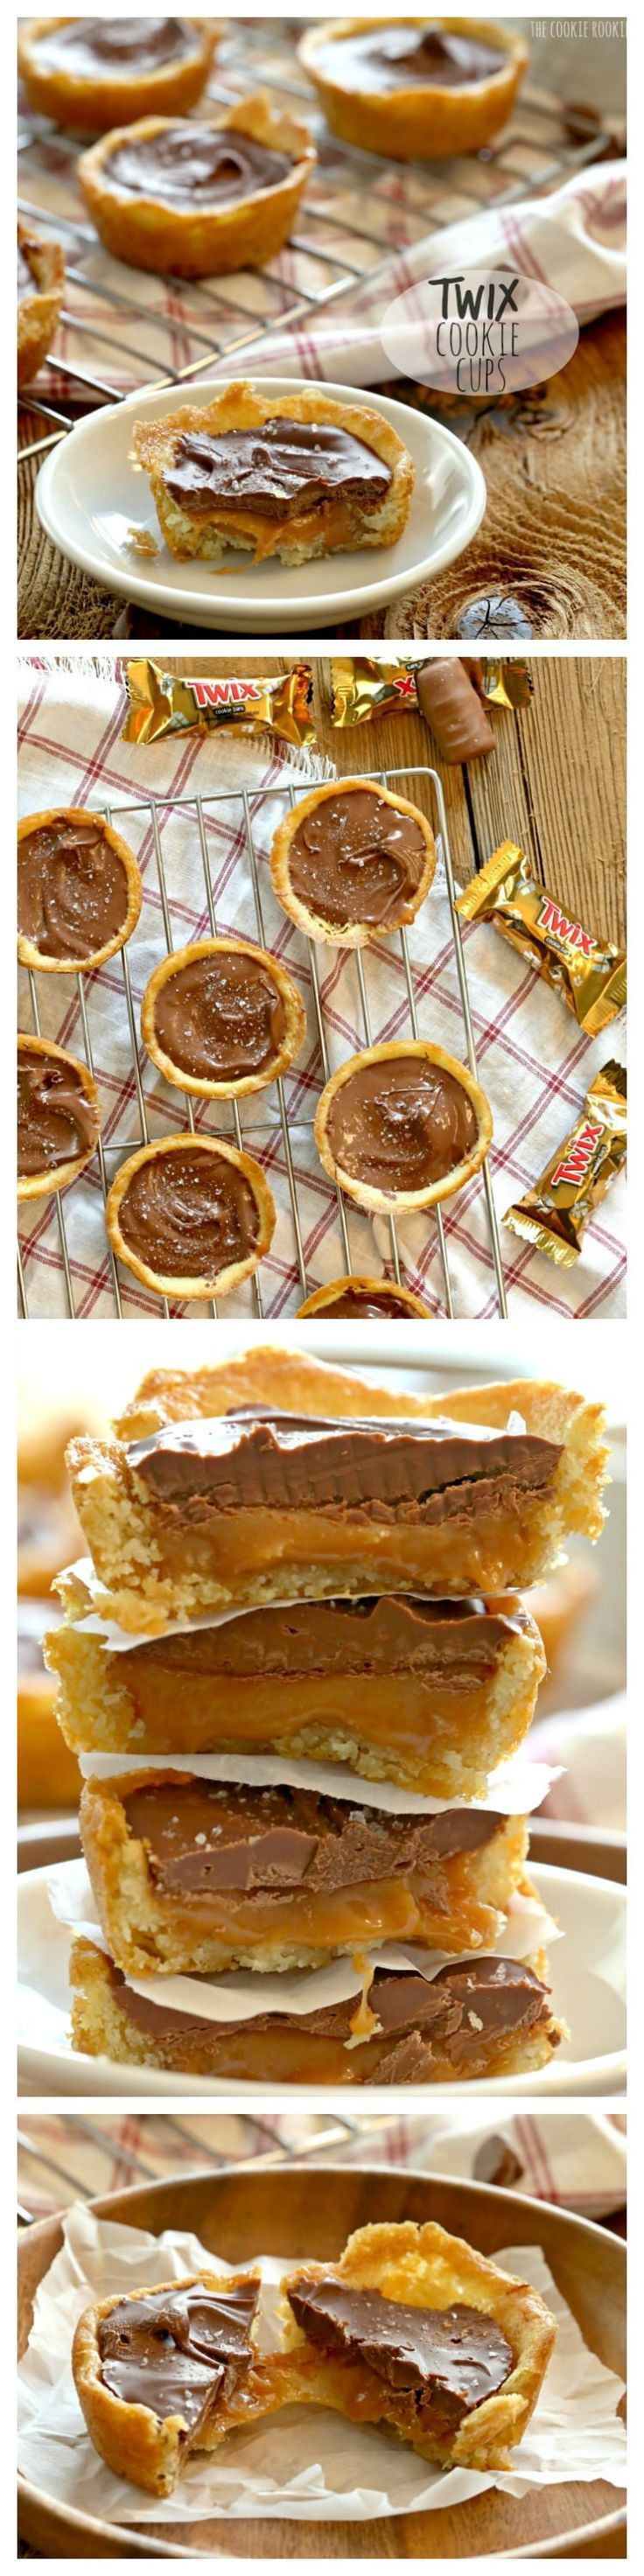 Twix Cookie Cups. AMAZING. Sugar Cookie Crust, salted caramel center, and topped with milk chocolate. BEST COOKIE RECIPE EVER! | The Cookie Rookie